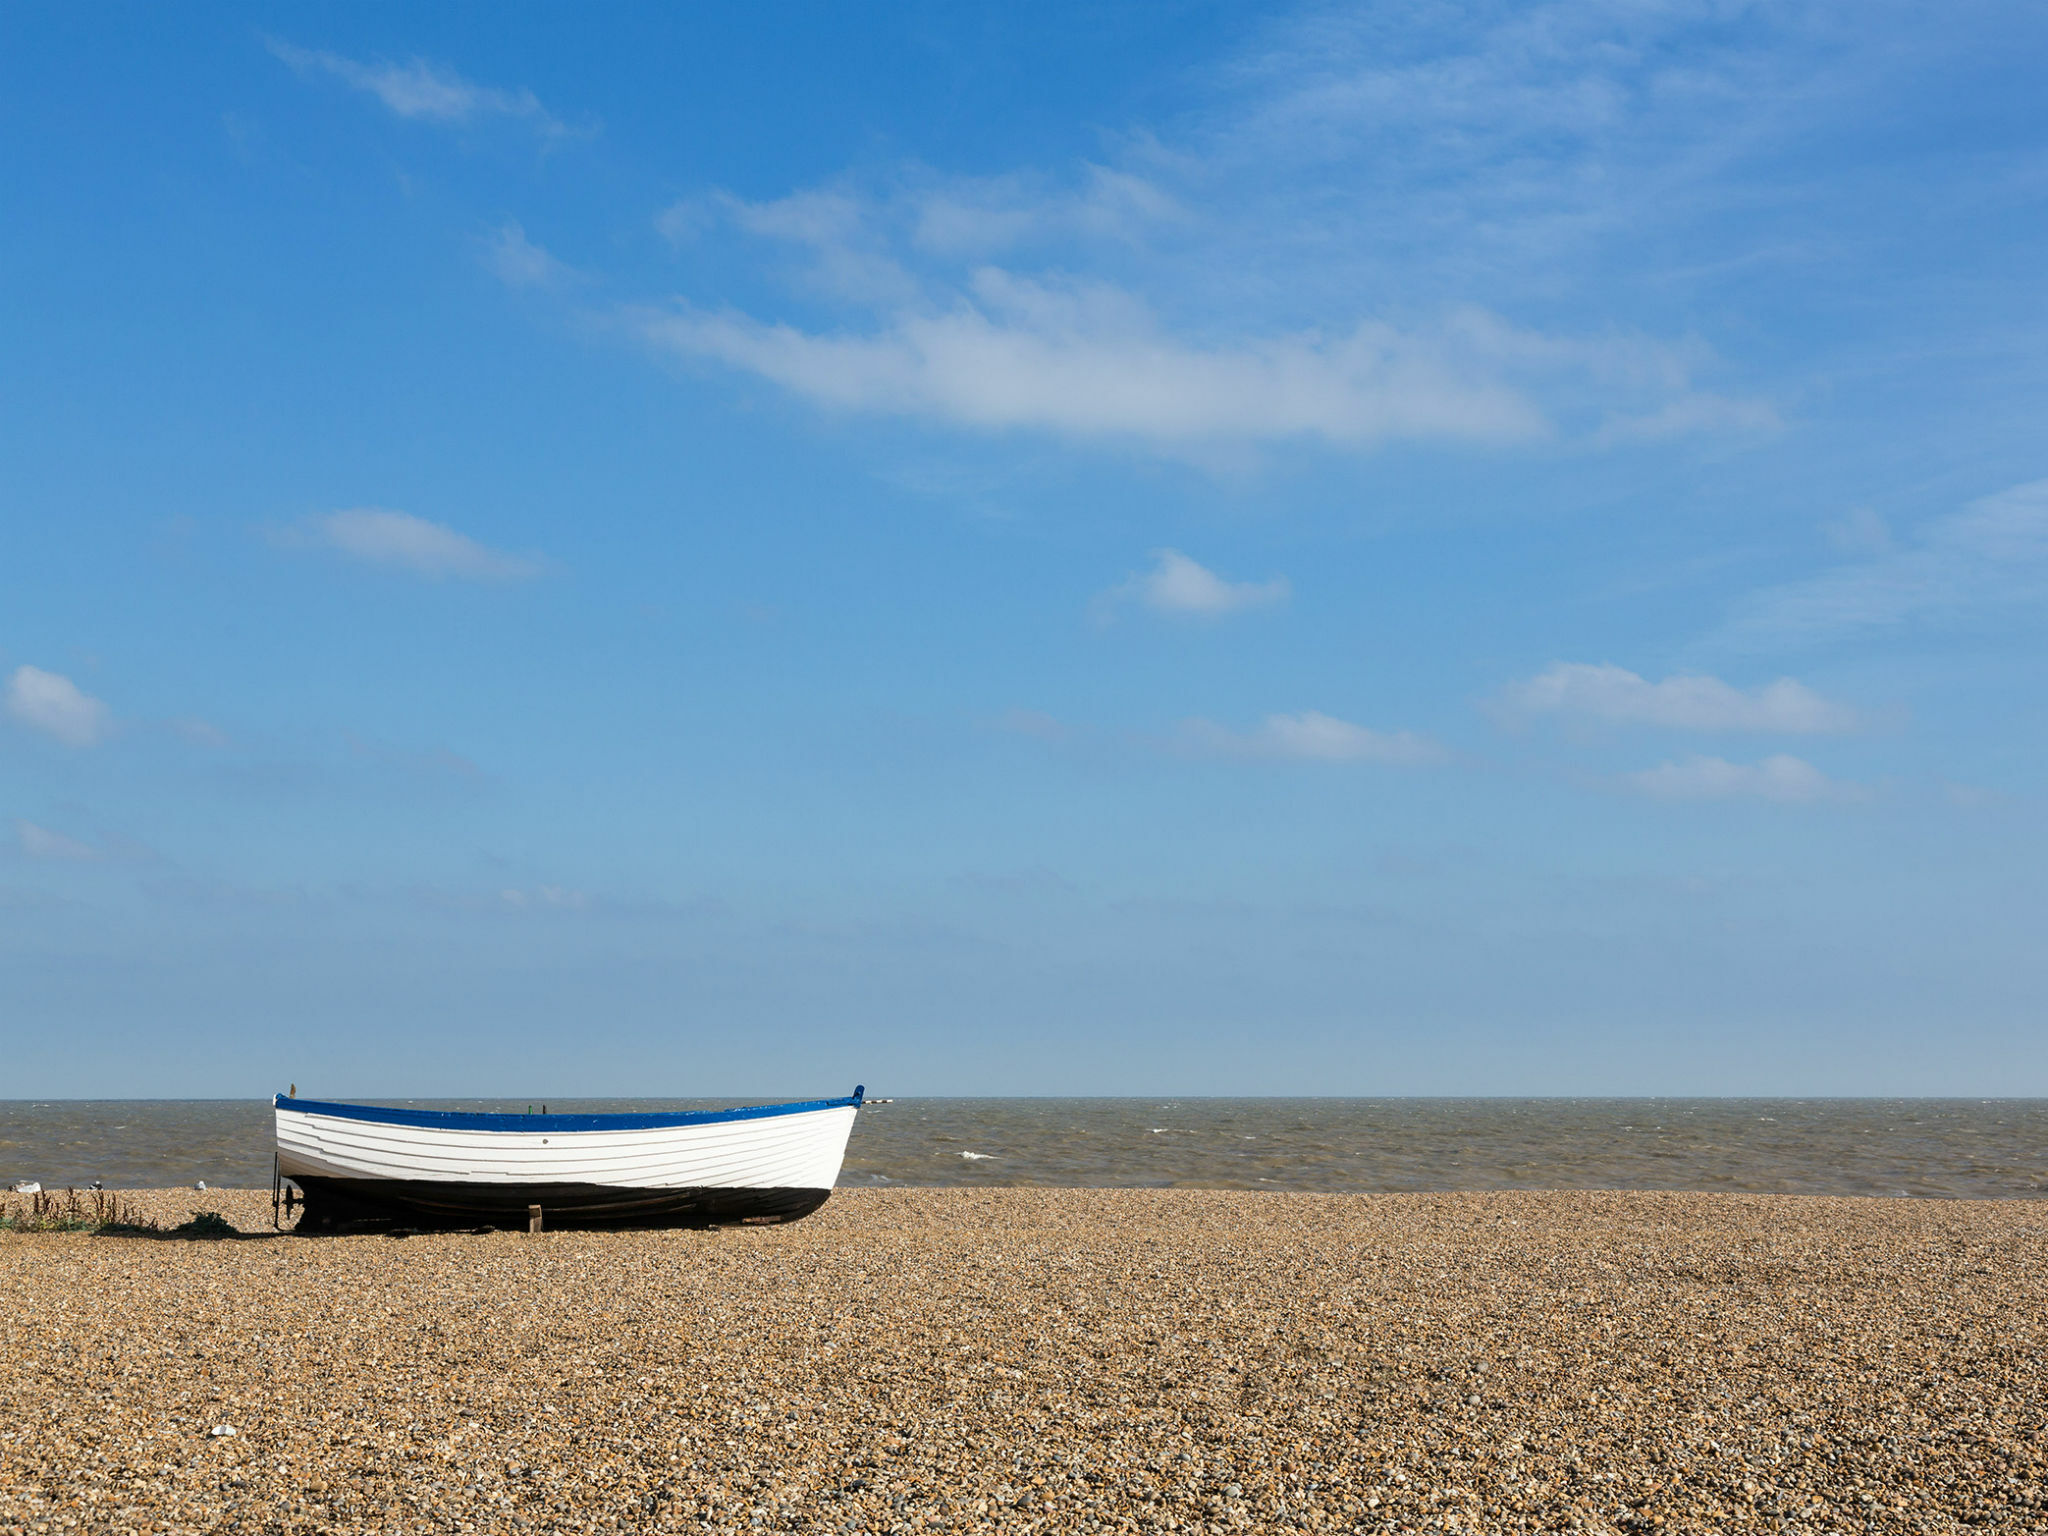 A boat at Aldeburgh seaside